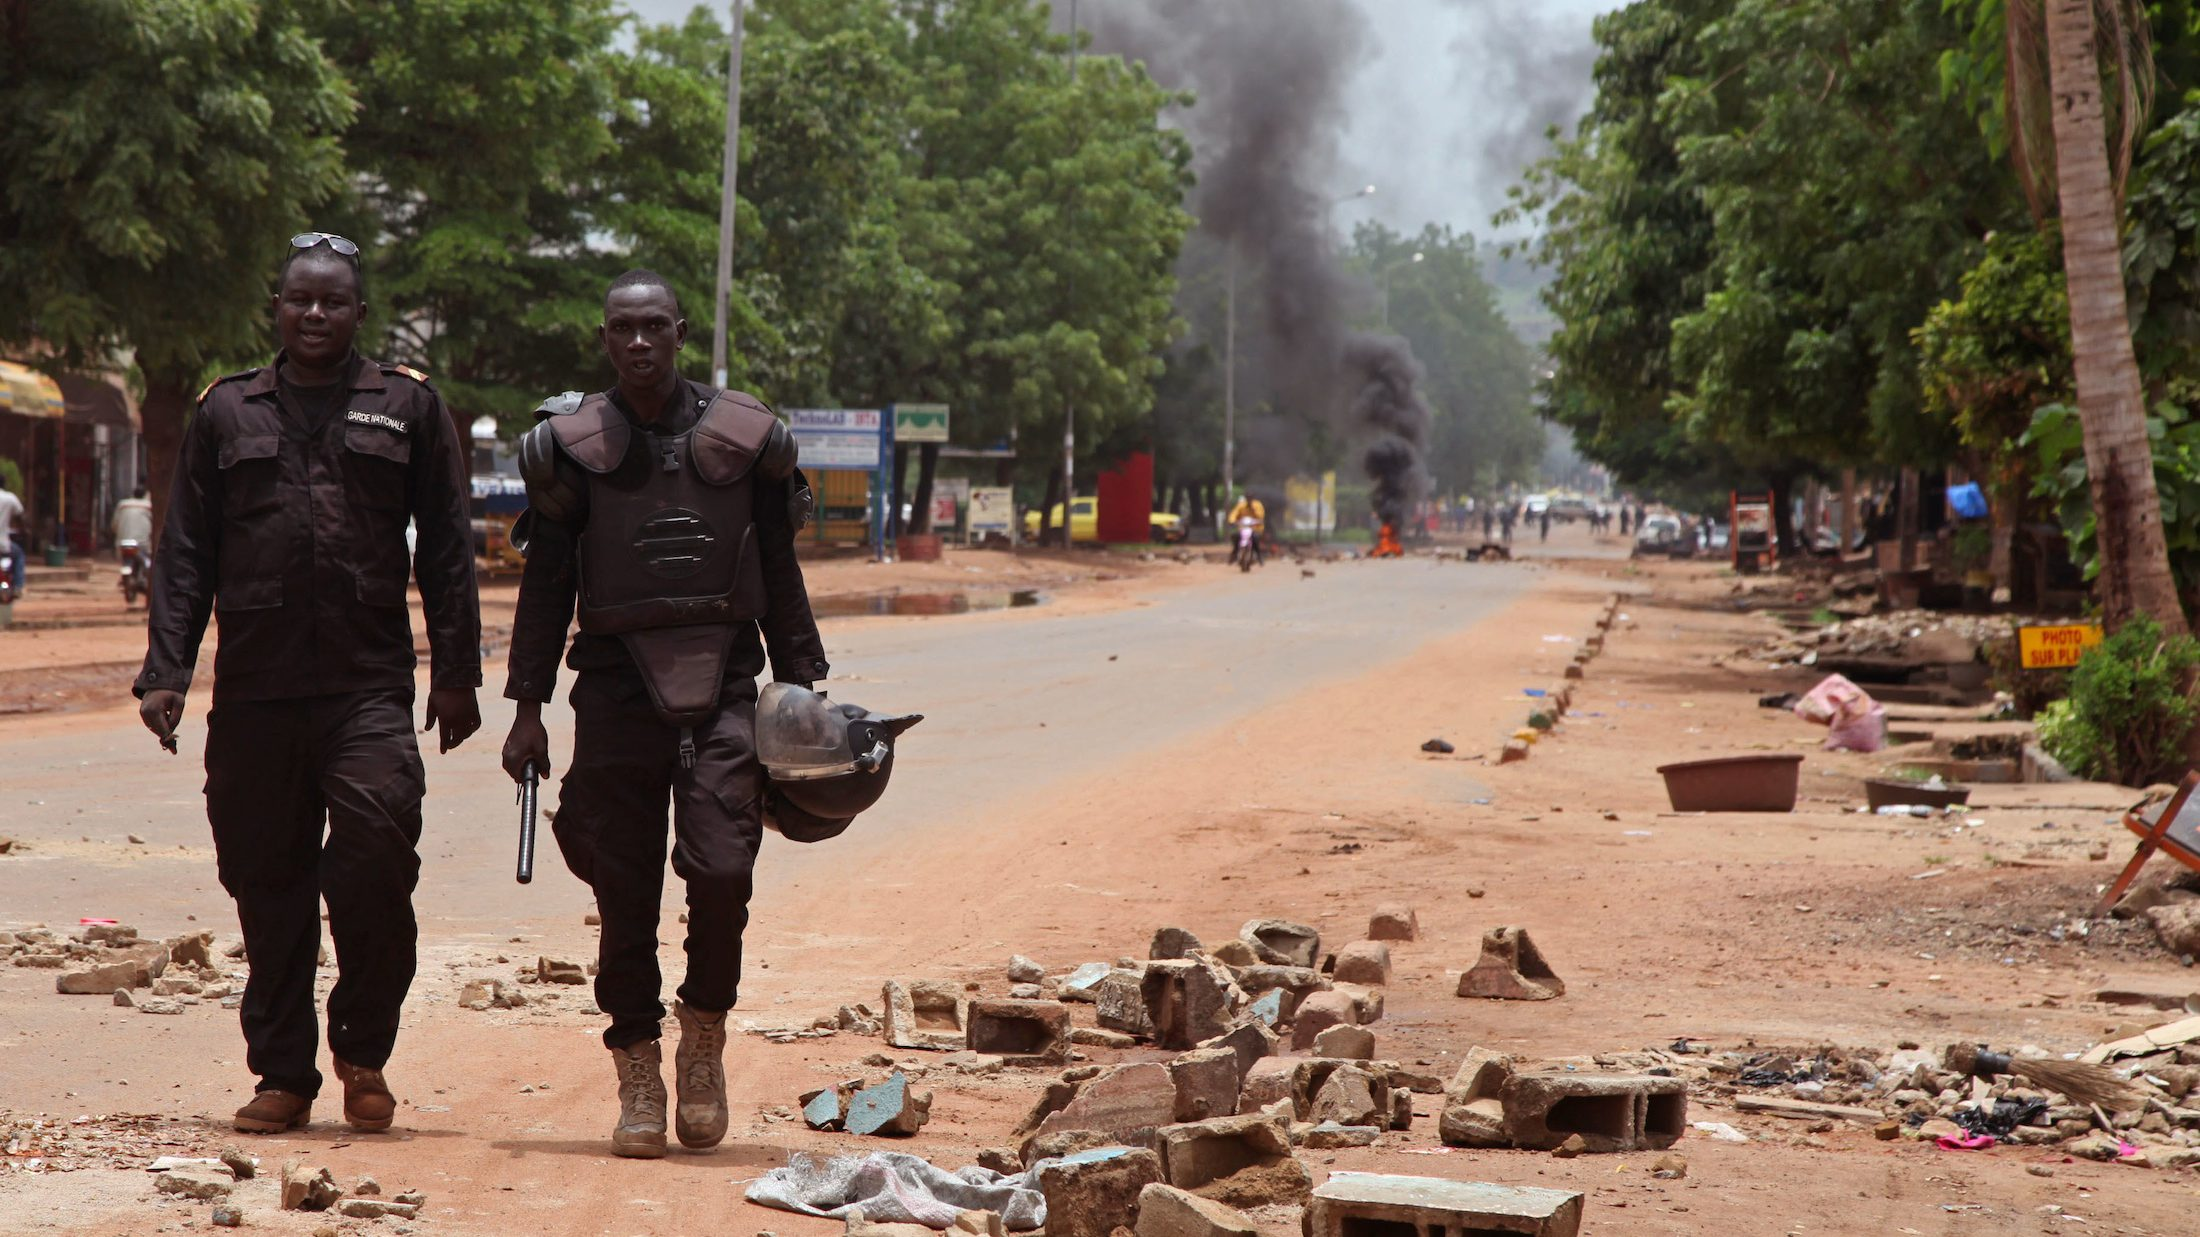 Mali police after a protest, in Bamako, Mali on Aug. 17.